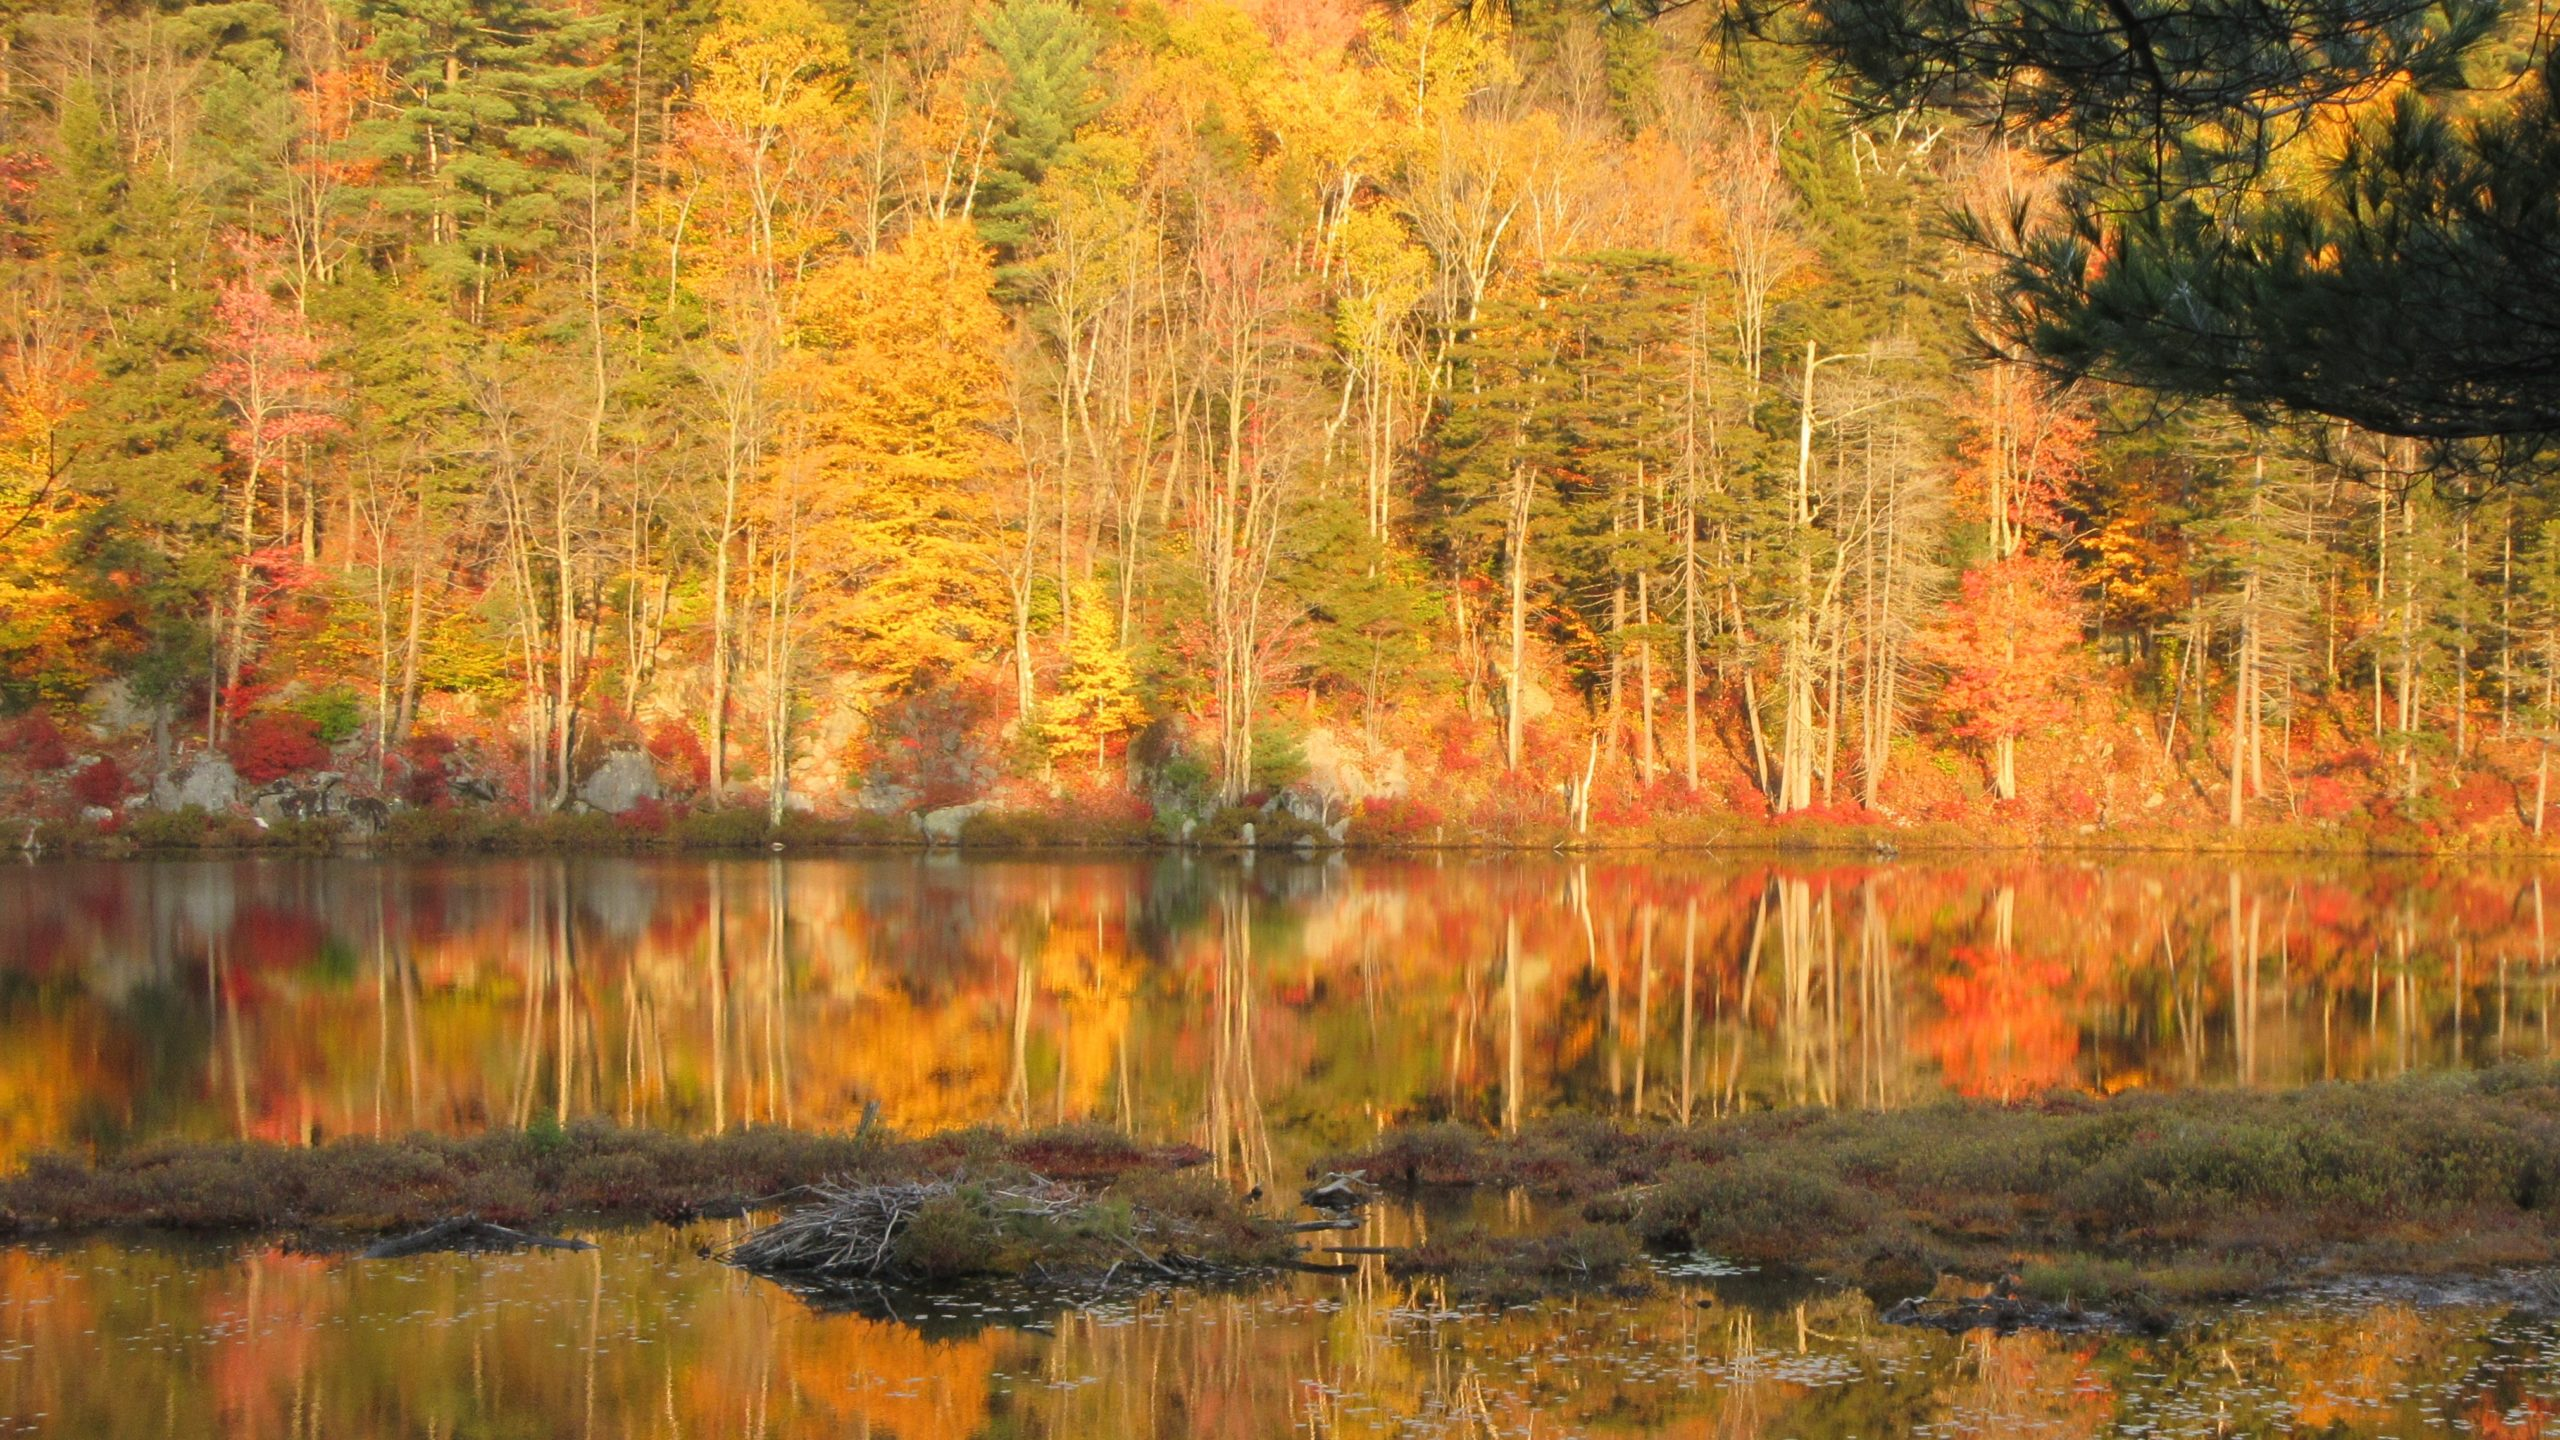 Autumn leaves over Lily Pond